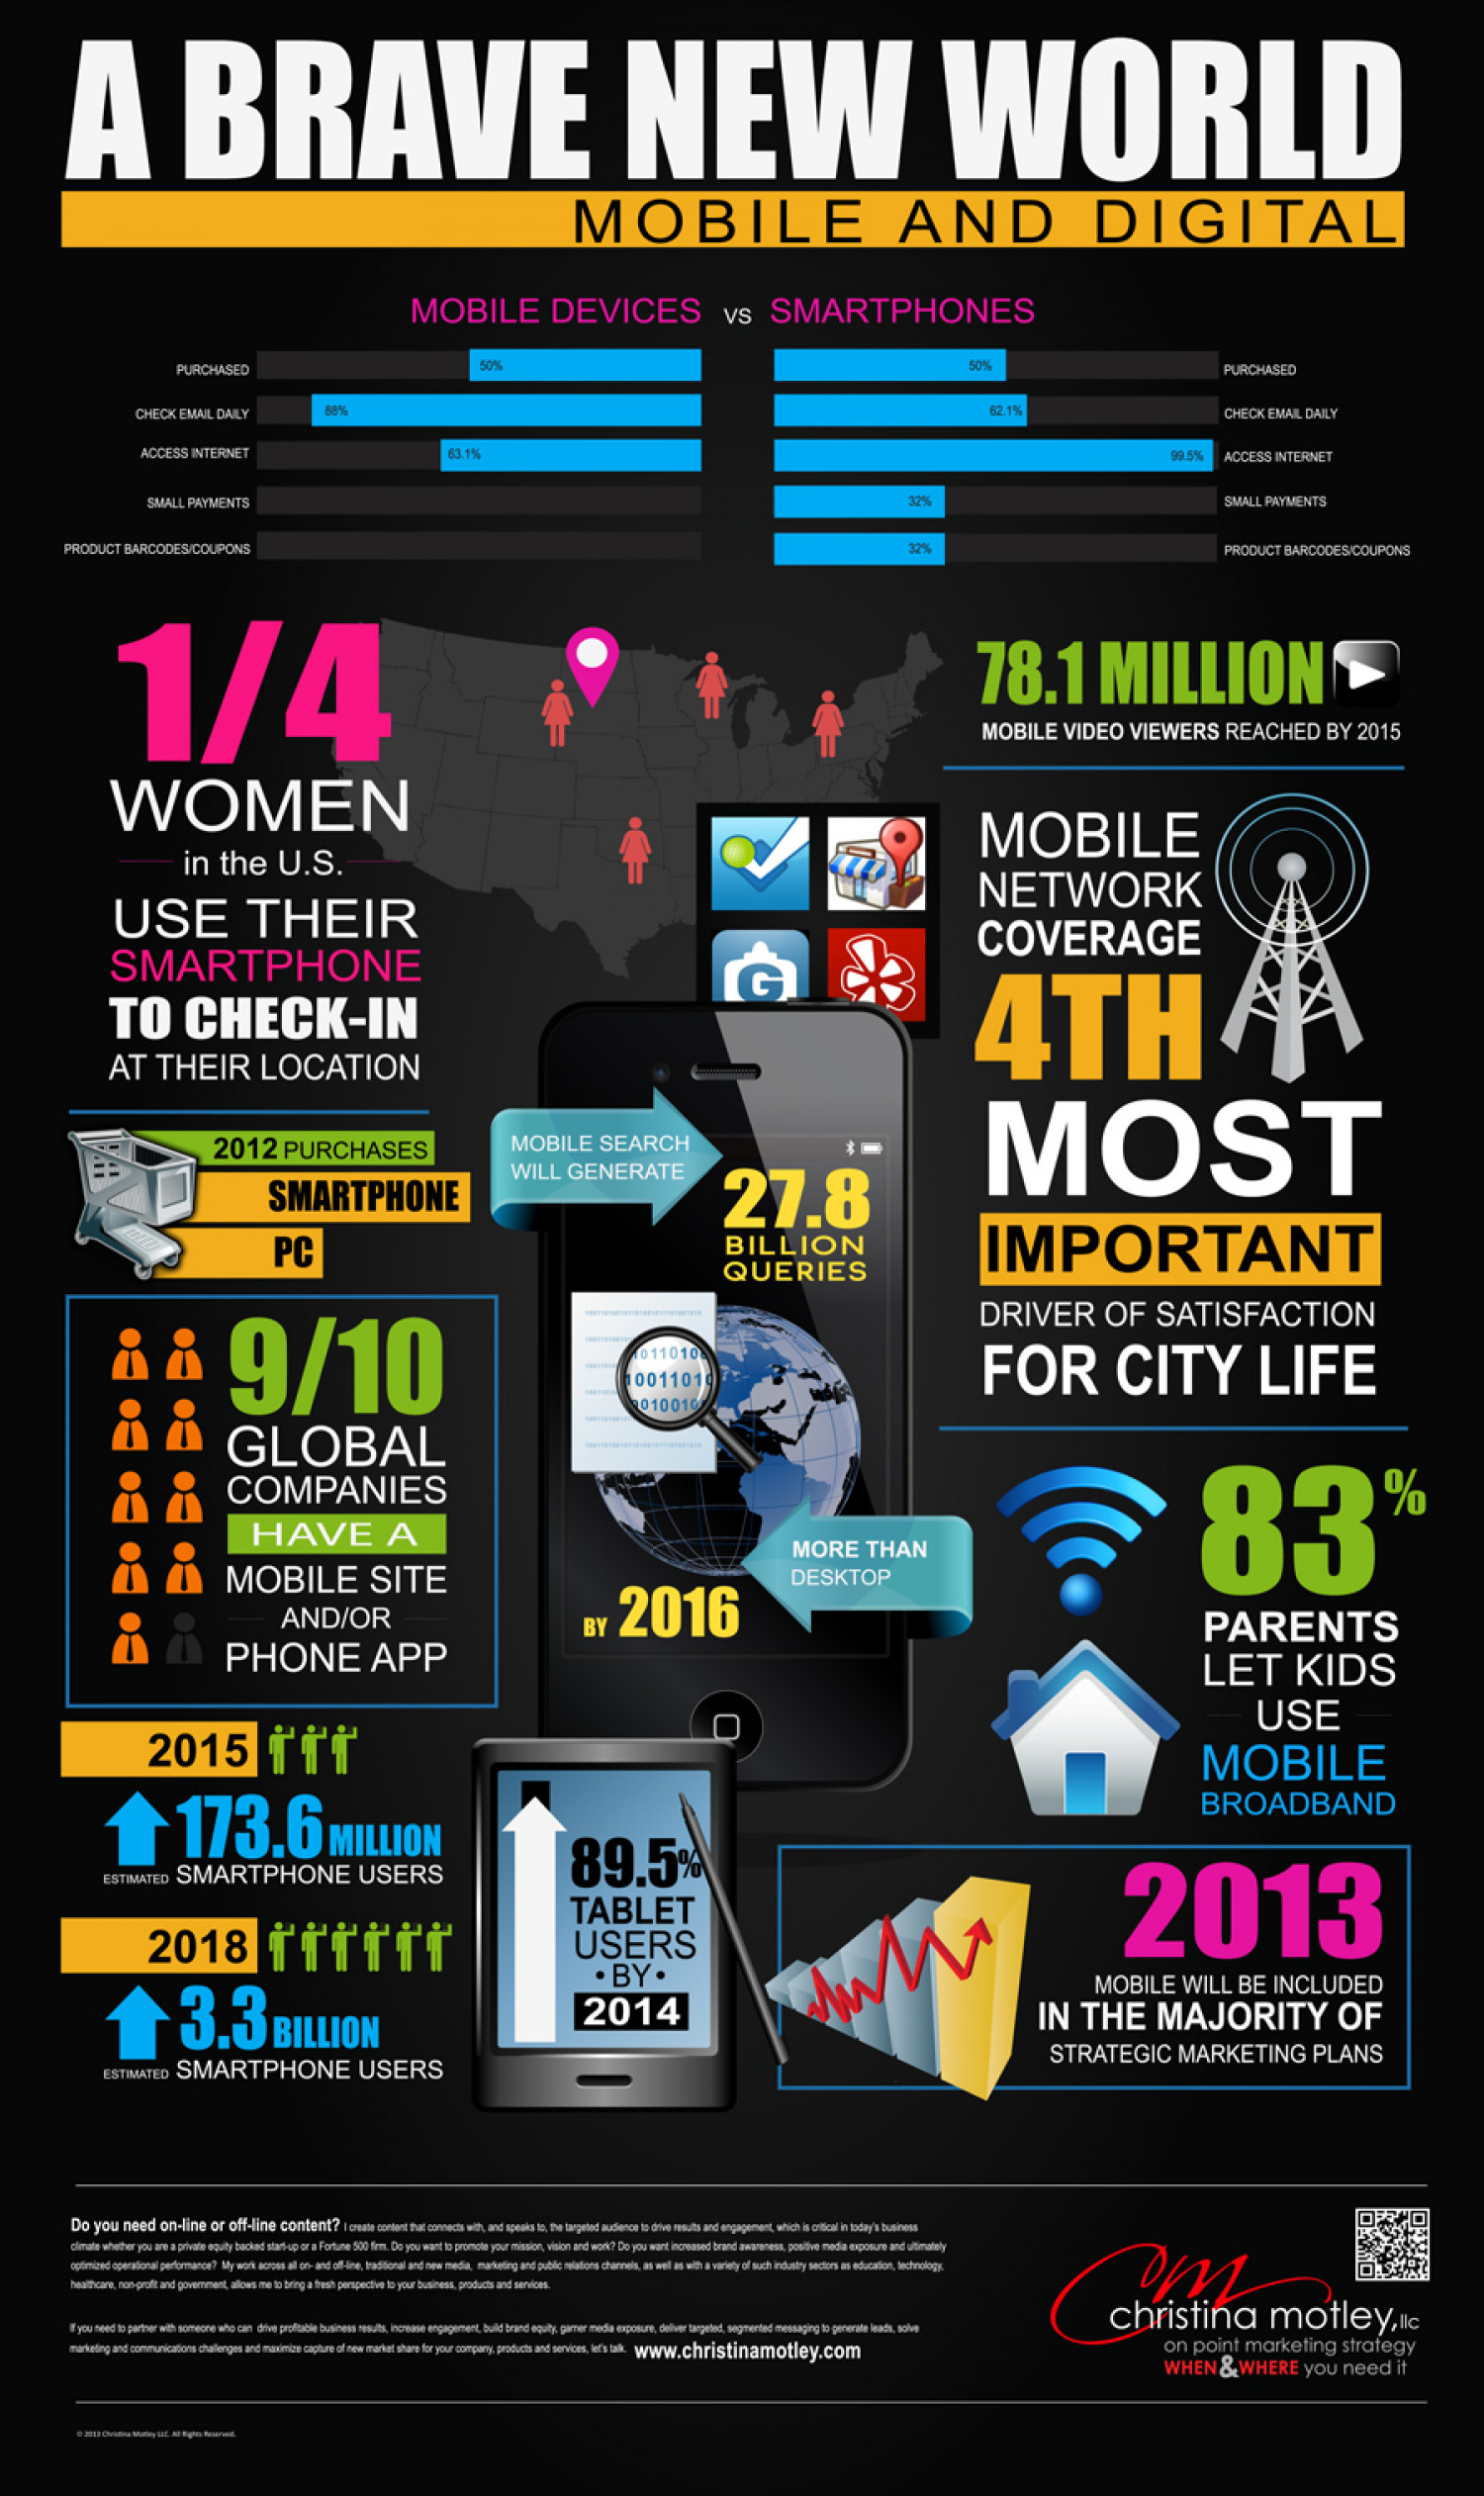 A Brave New World: Mobile and Digital Infographic